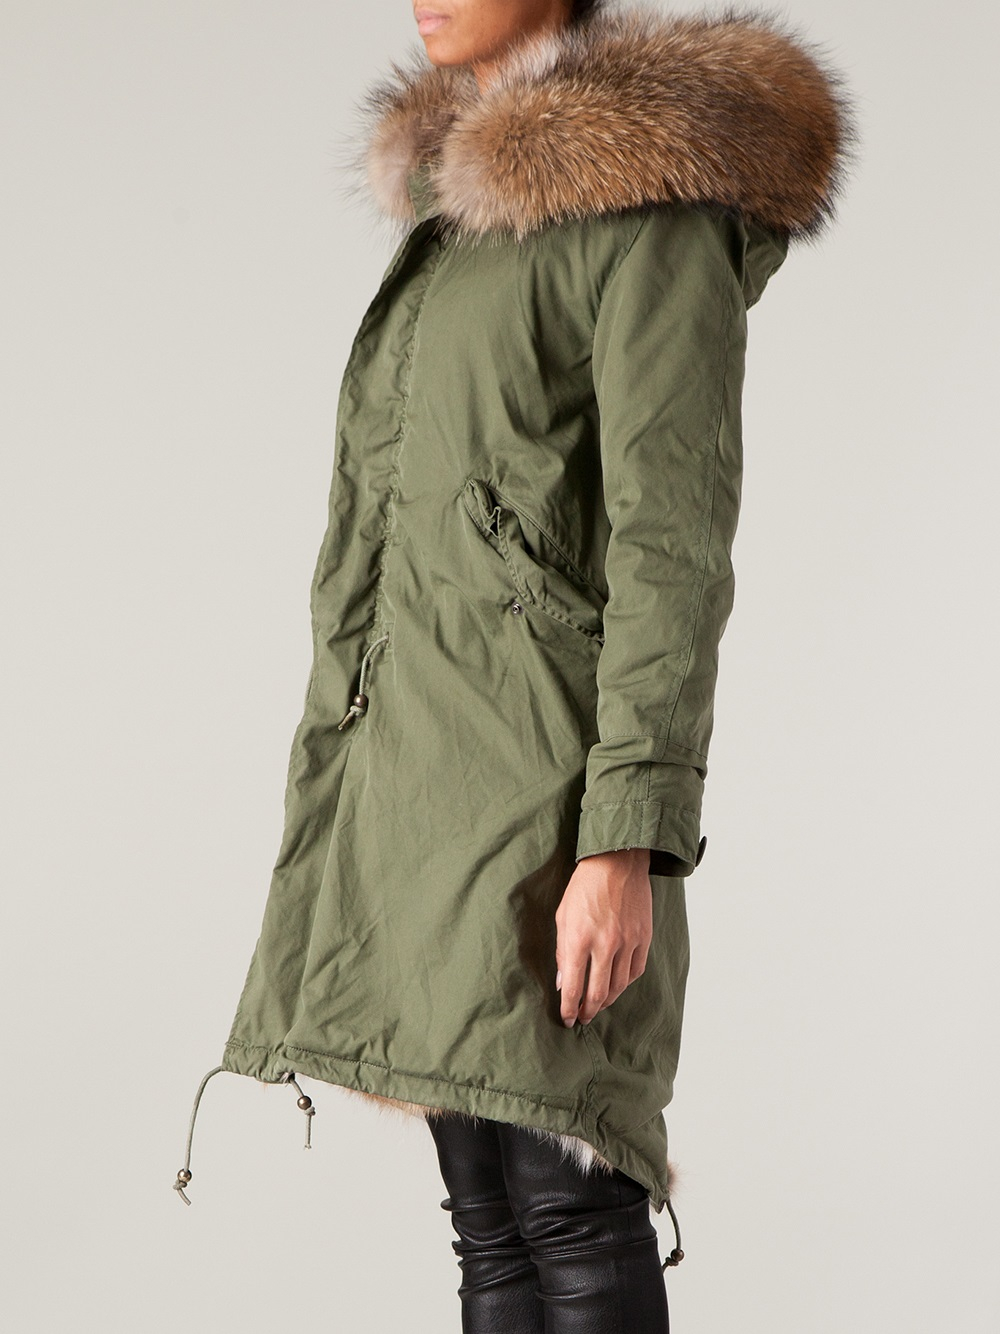 Mr & mrs italy Coyote Fur Lined Parka in Green | Lyst